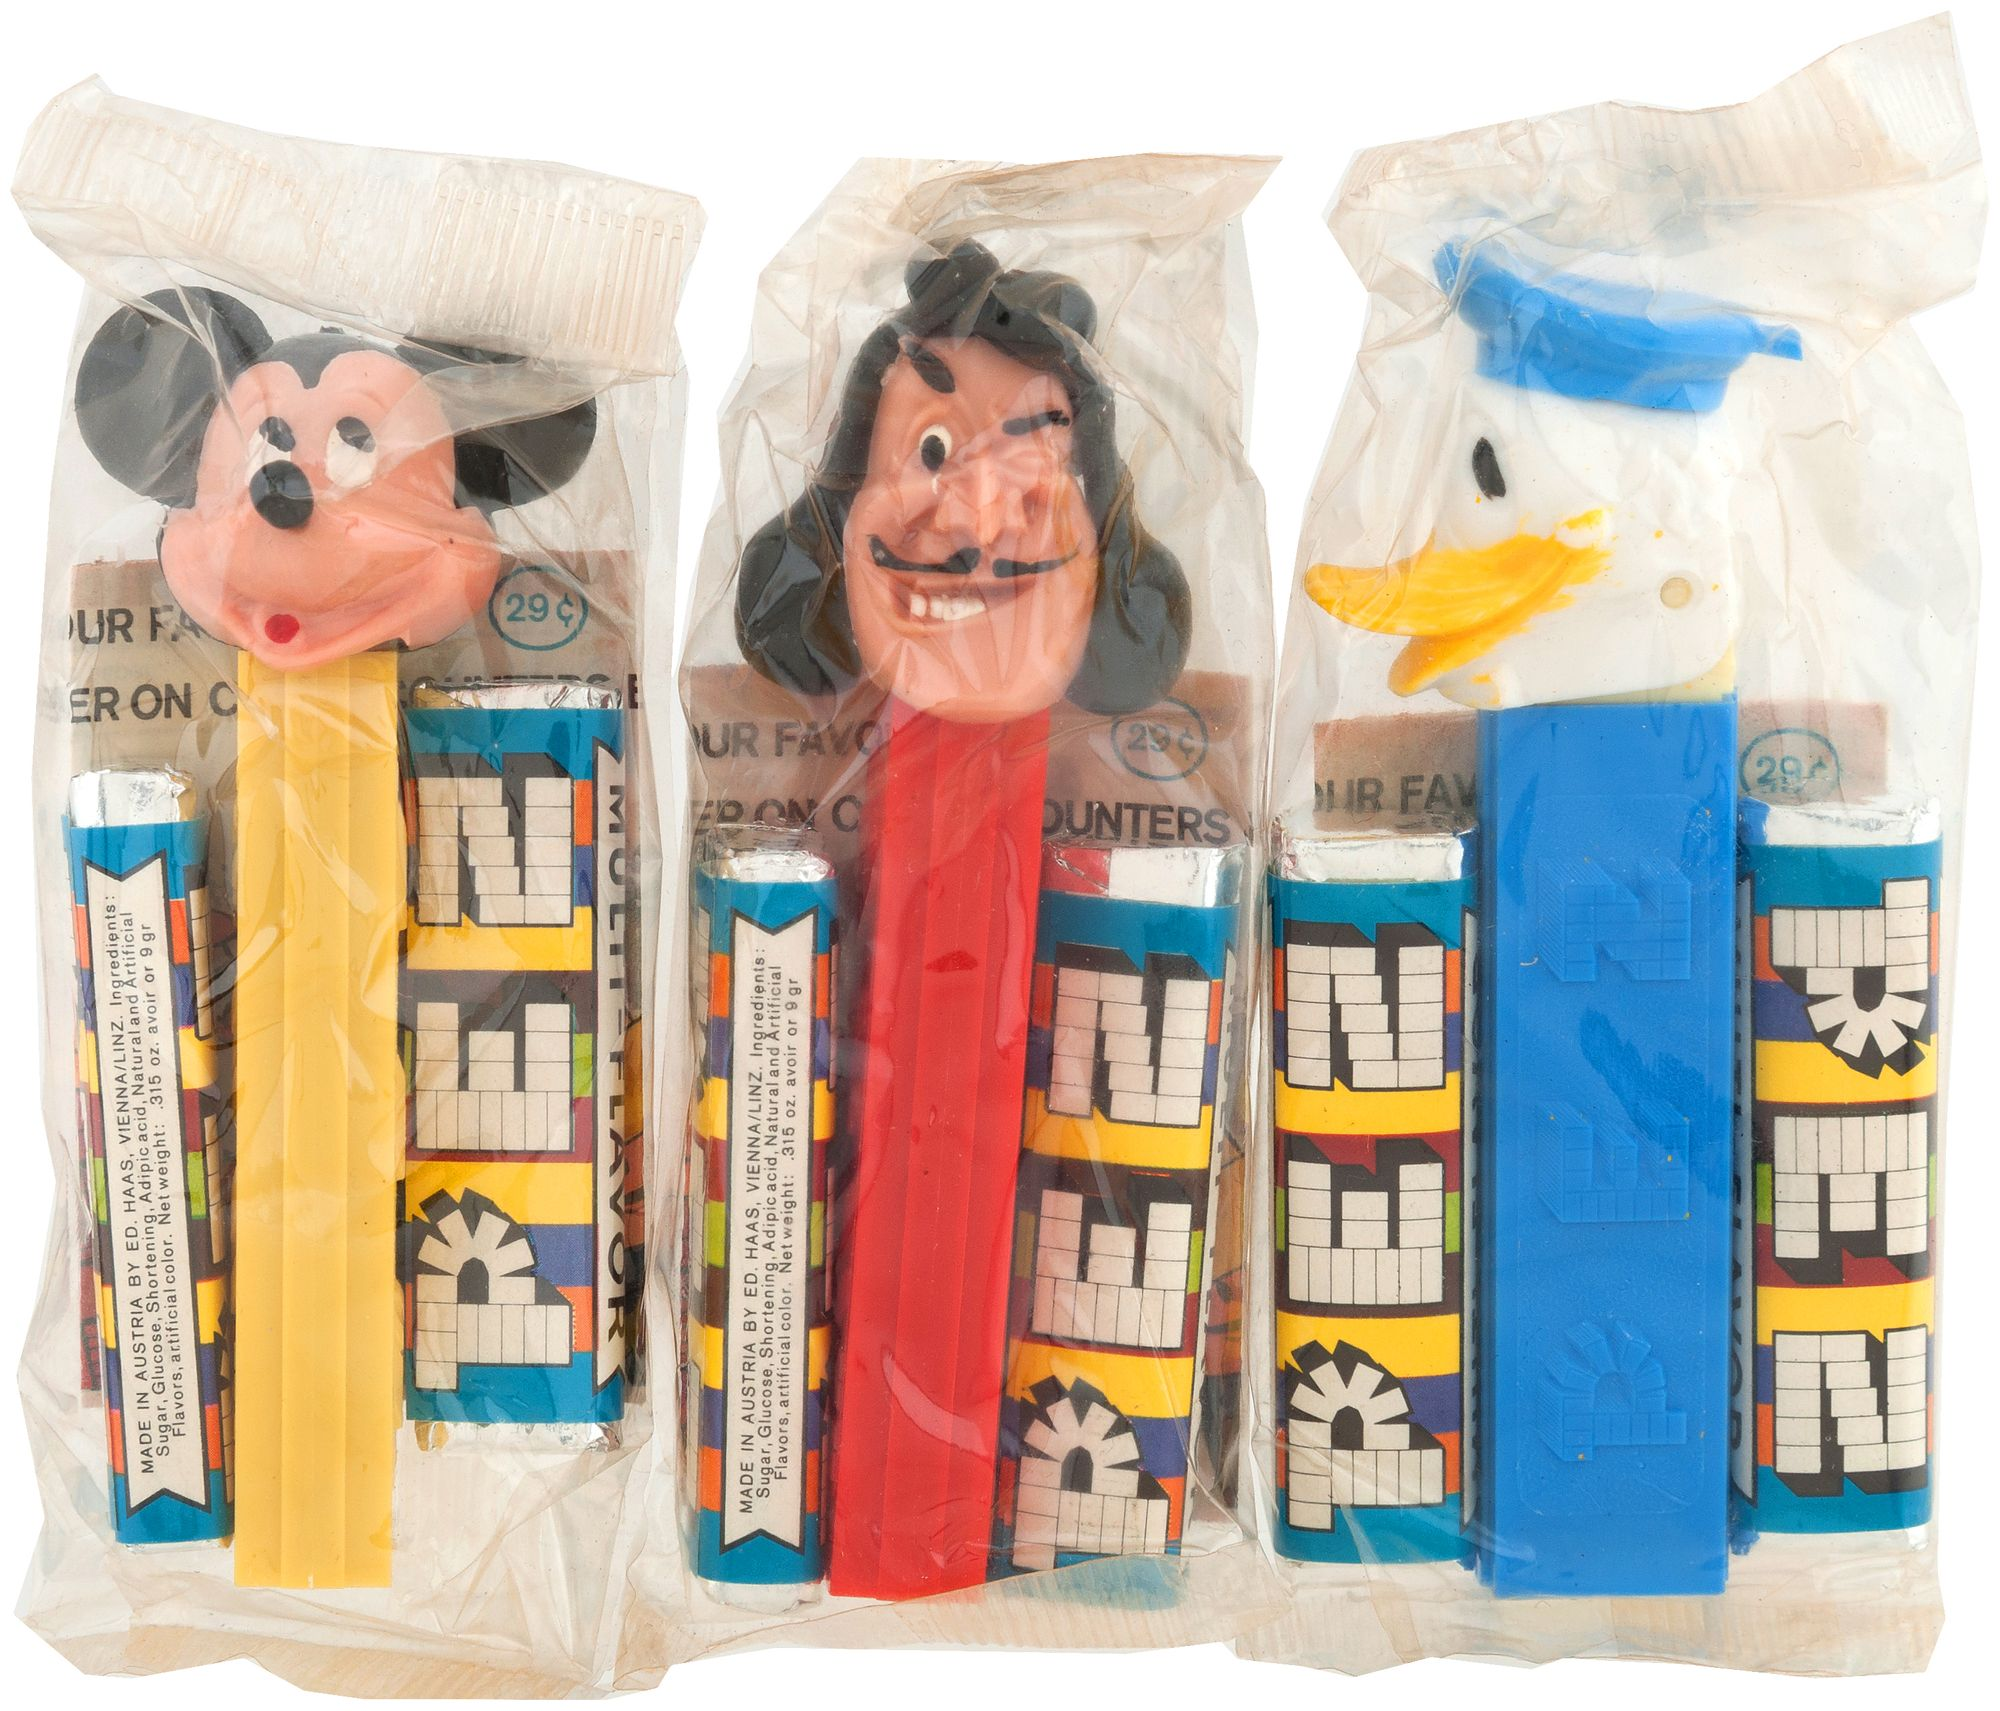 PEZ dispensers from the 1960s